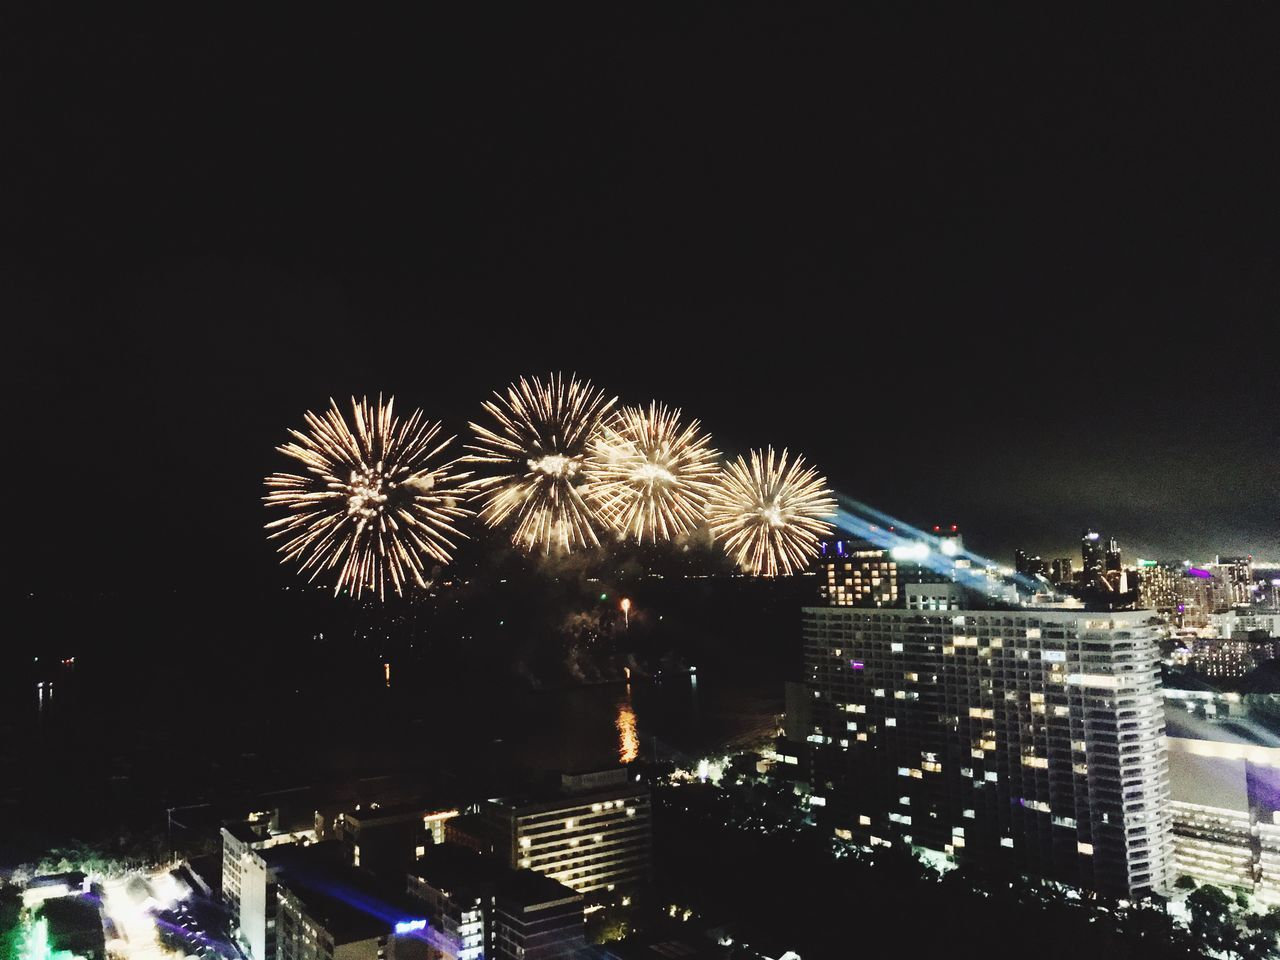 illuminated, night, building exterior, architecture, firework, built structure, city, firework display, arts culture and entertainment, sky, exploding, celebration, event, motion, glowing, copy space, nature, no people, long exposure, cityscape, firework - man made object, light, outdoors, sparks, office building exterior